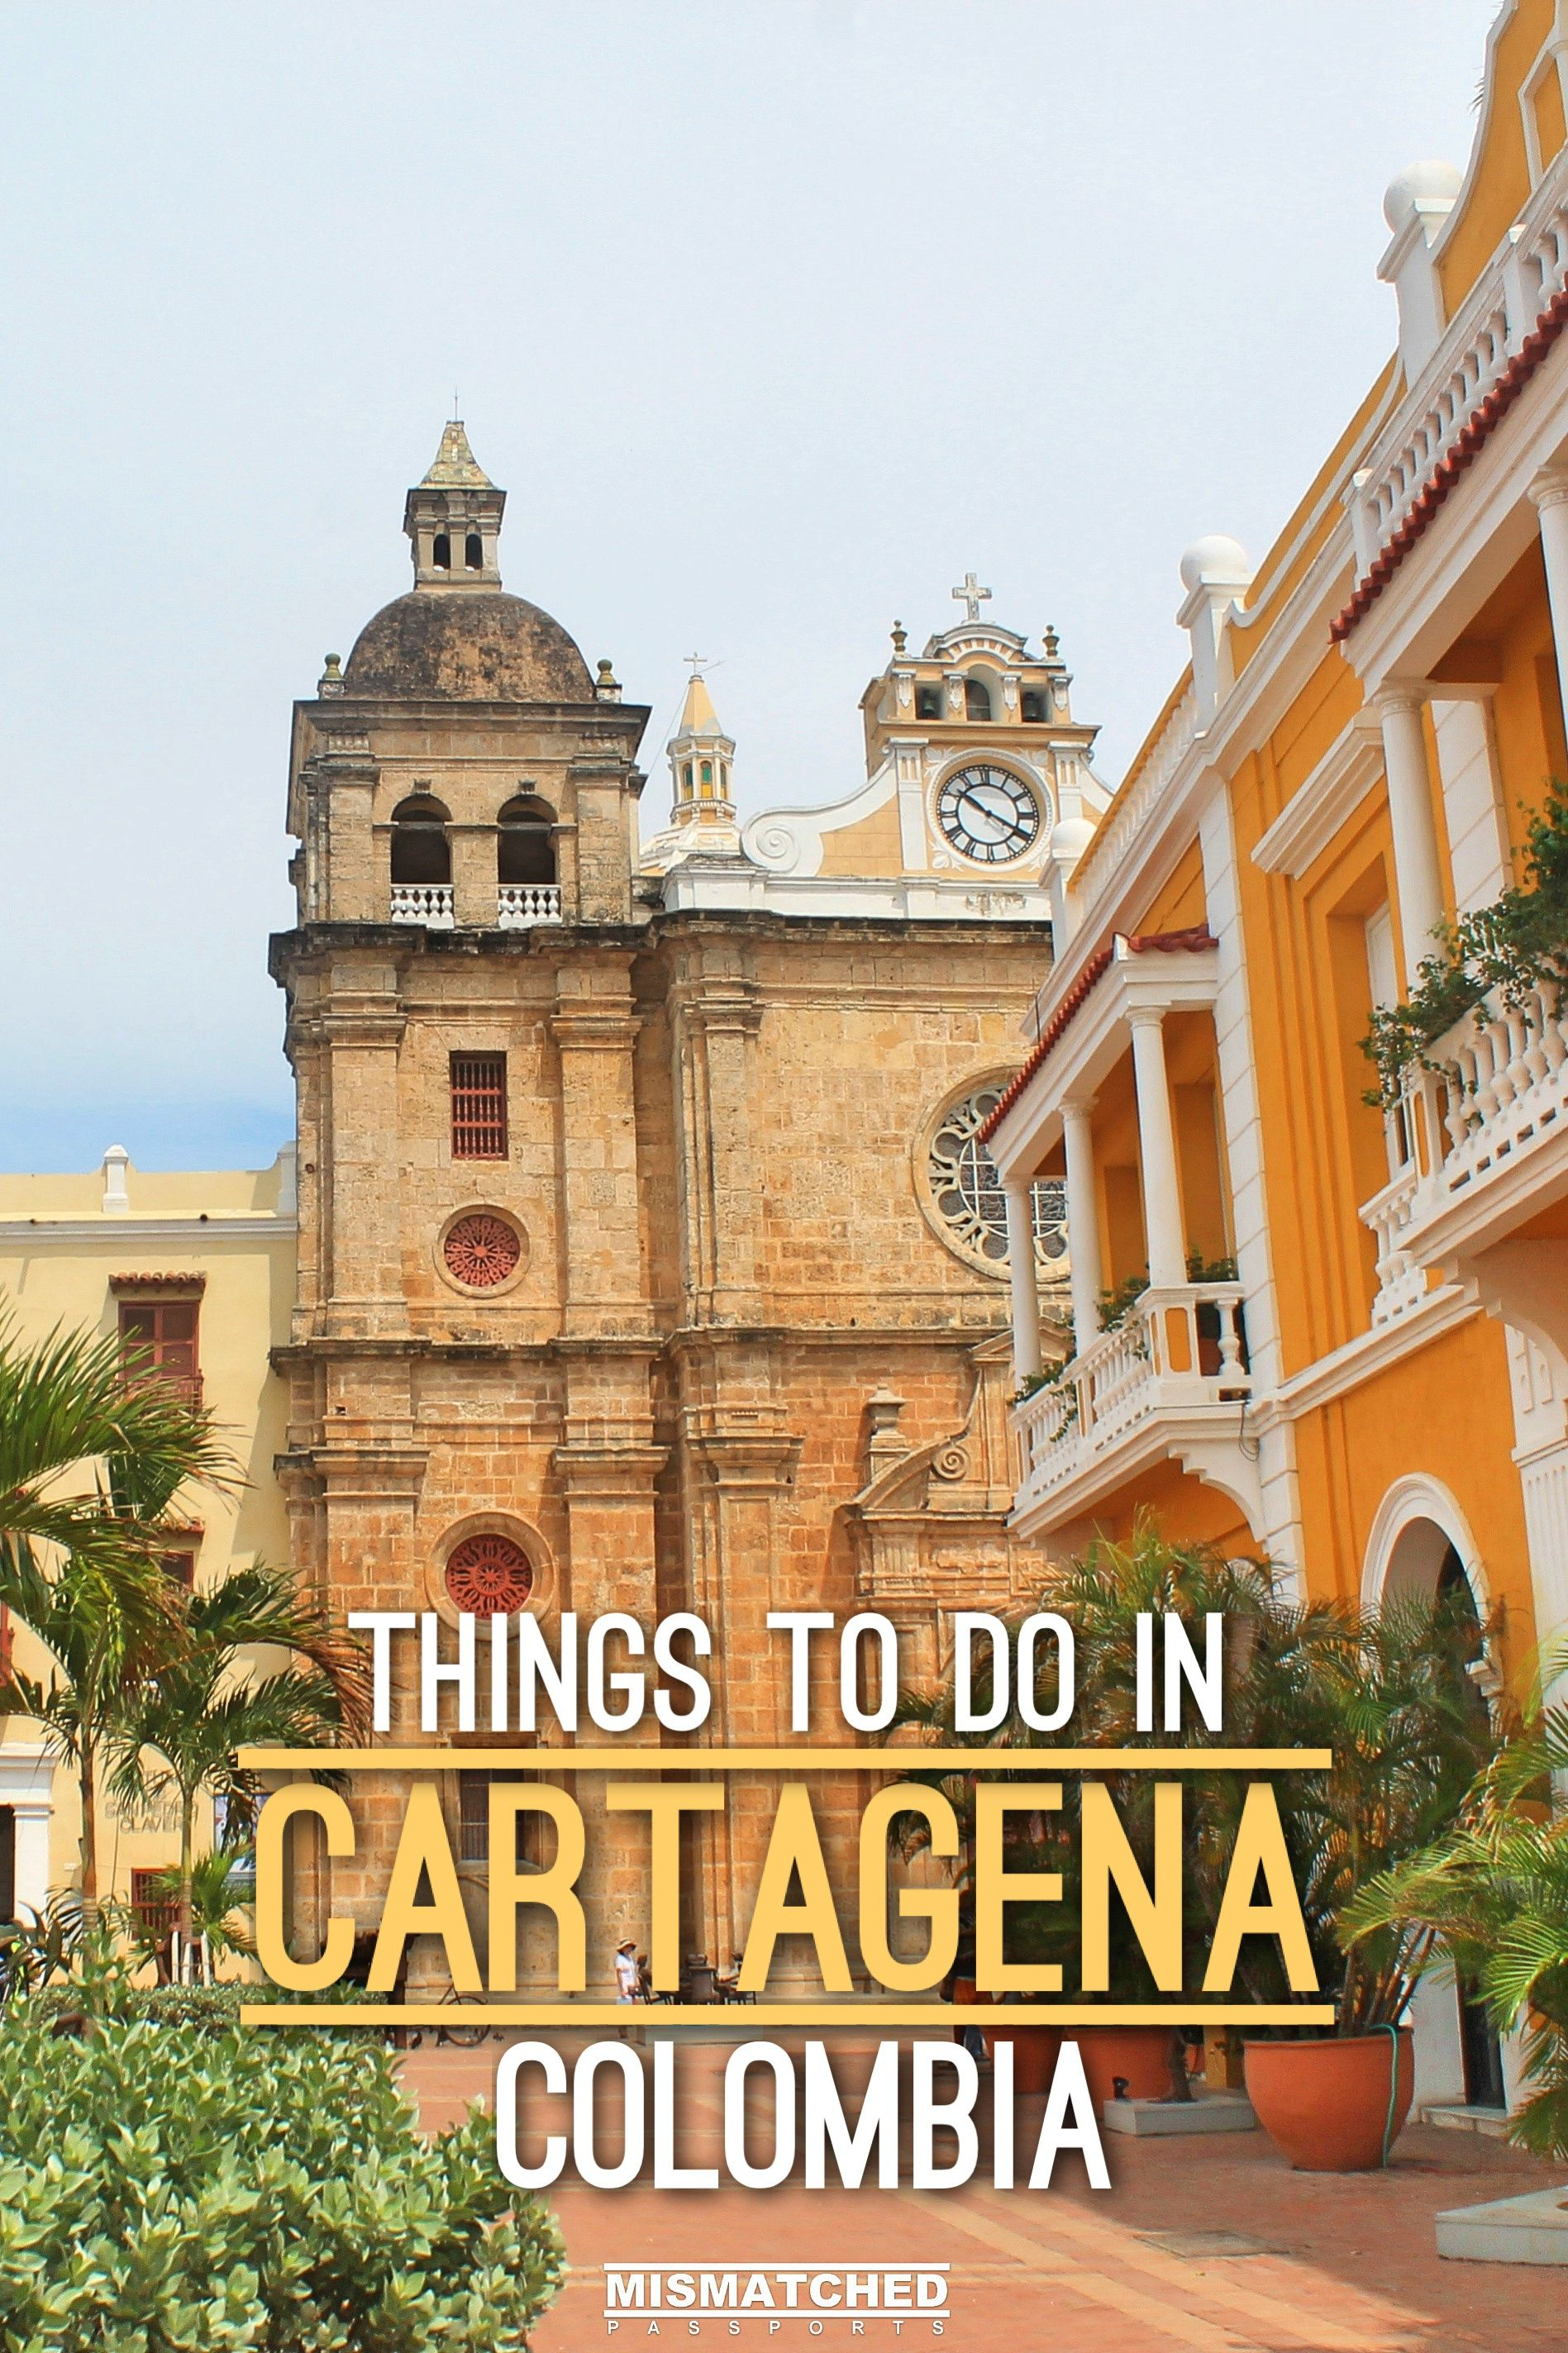 Cartagena: The Colonial Walled City Of Colombia